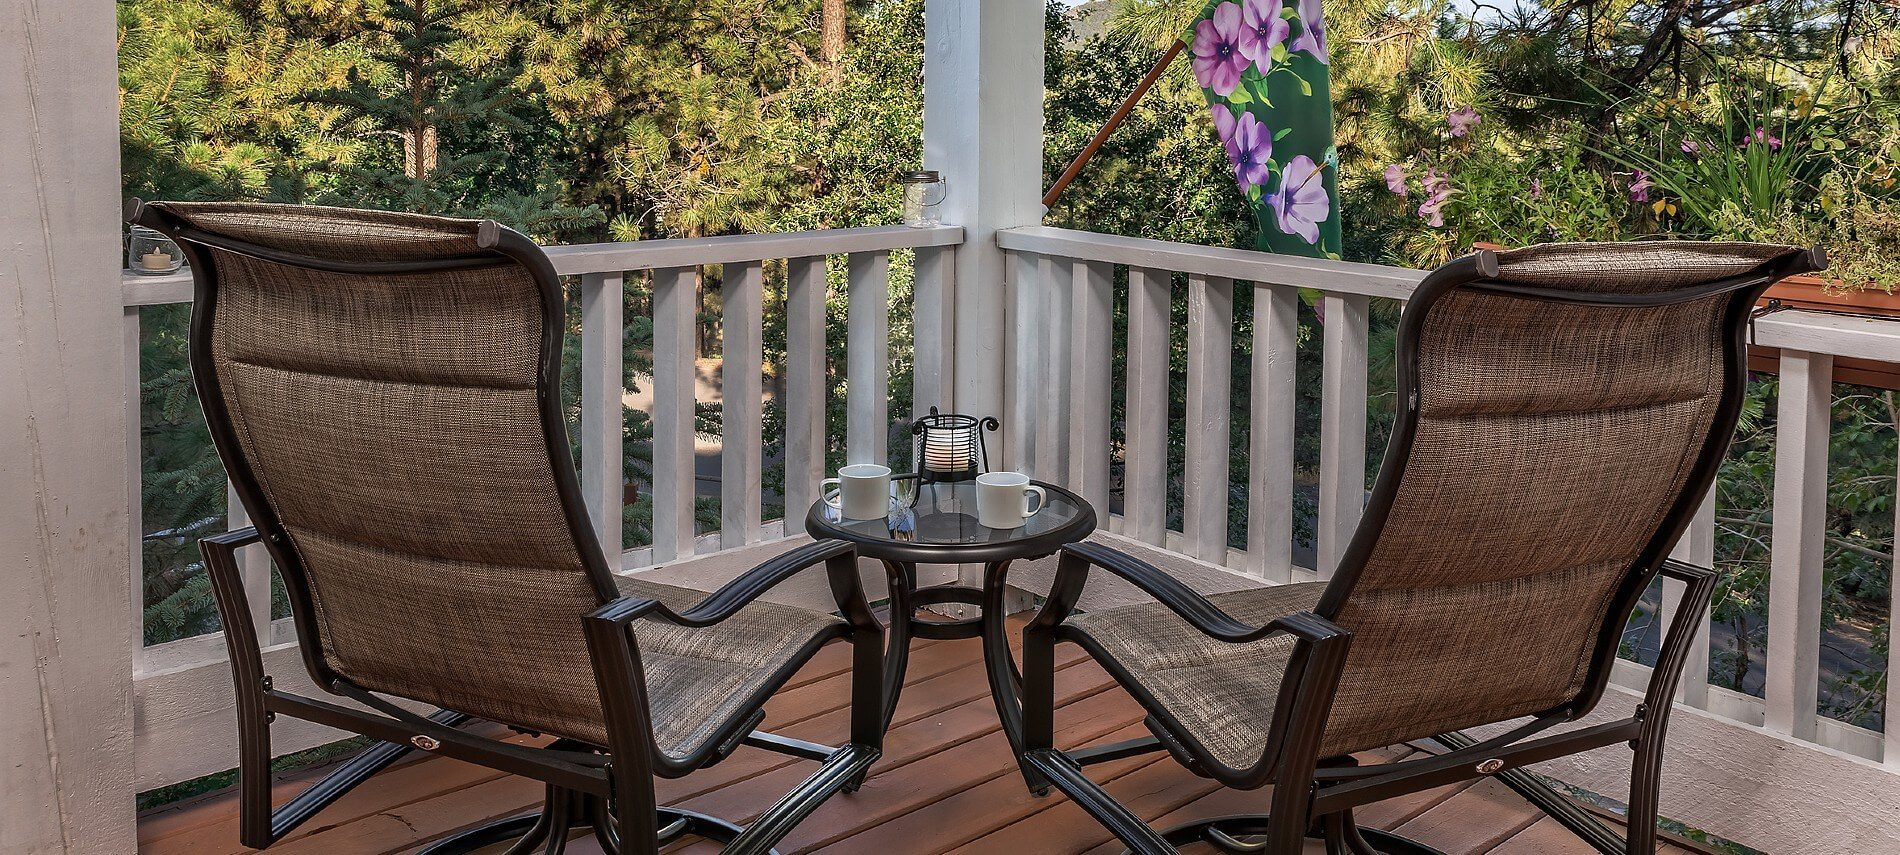 Two metal framed patio chairs with side table holding coffee cups outside viewing a wooded area